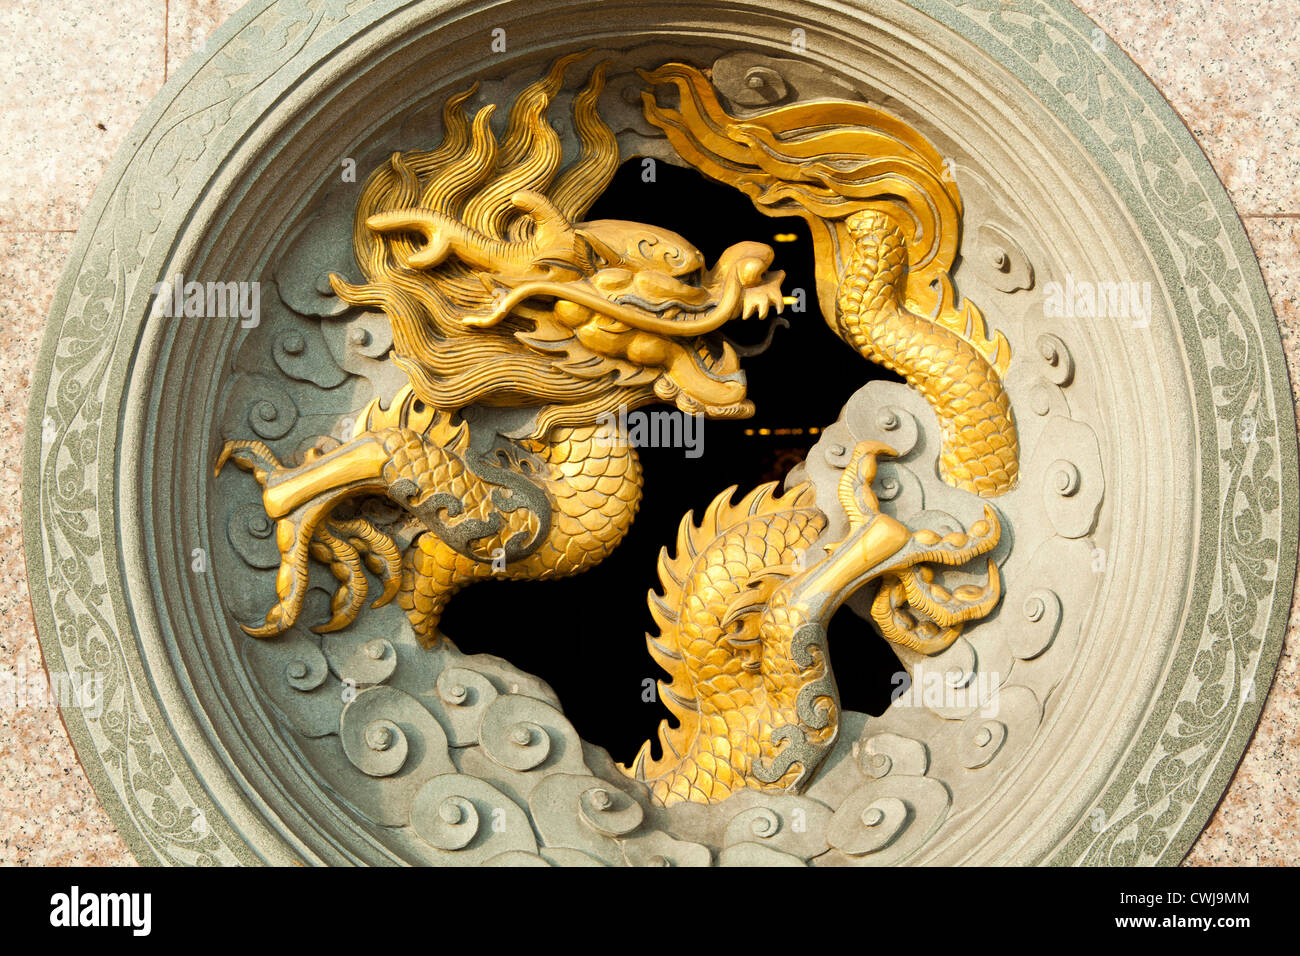 Chinese dragons are mythical creatures in mythology and folklore. In Chinese art they are portrayed as serpentine - Stock Image